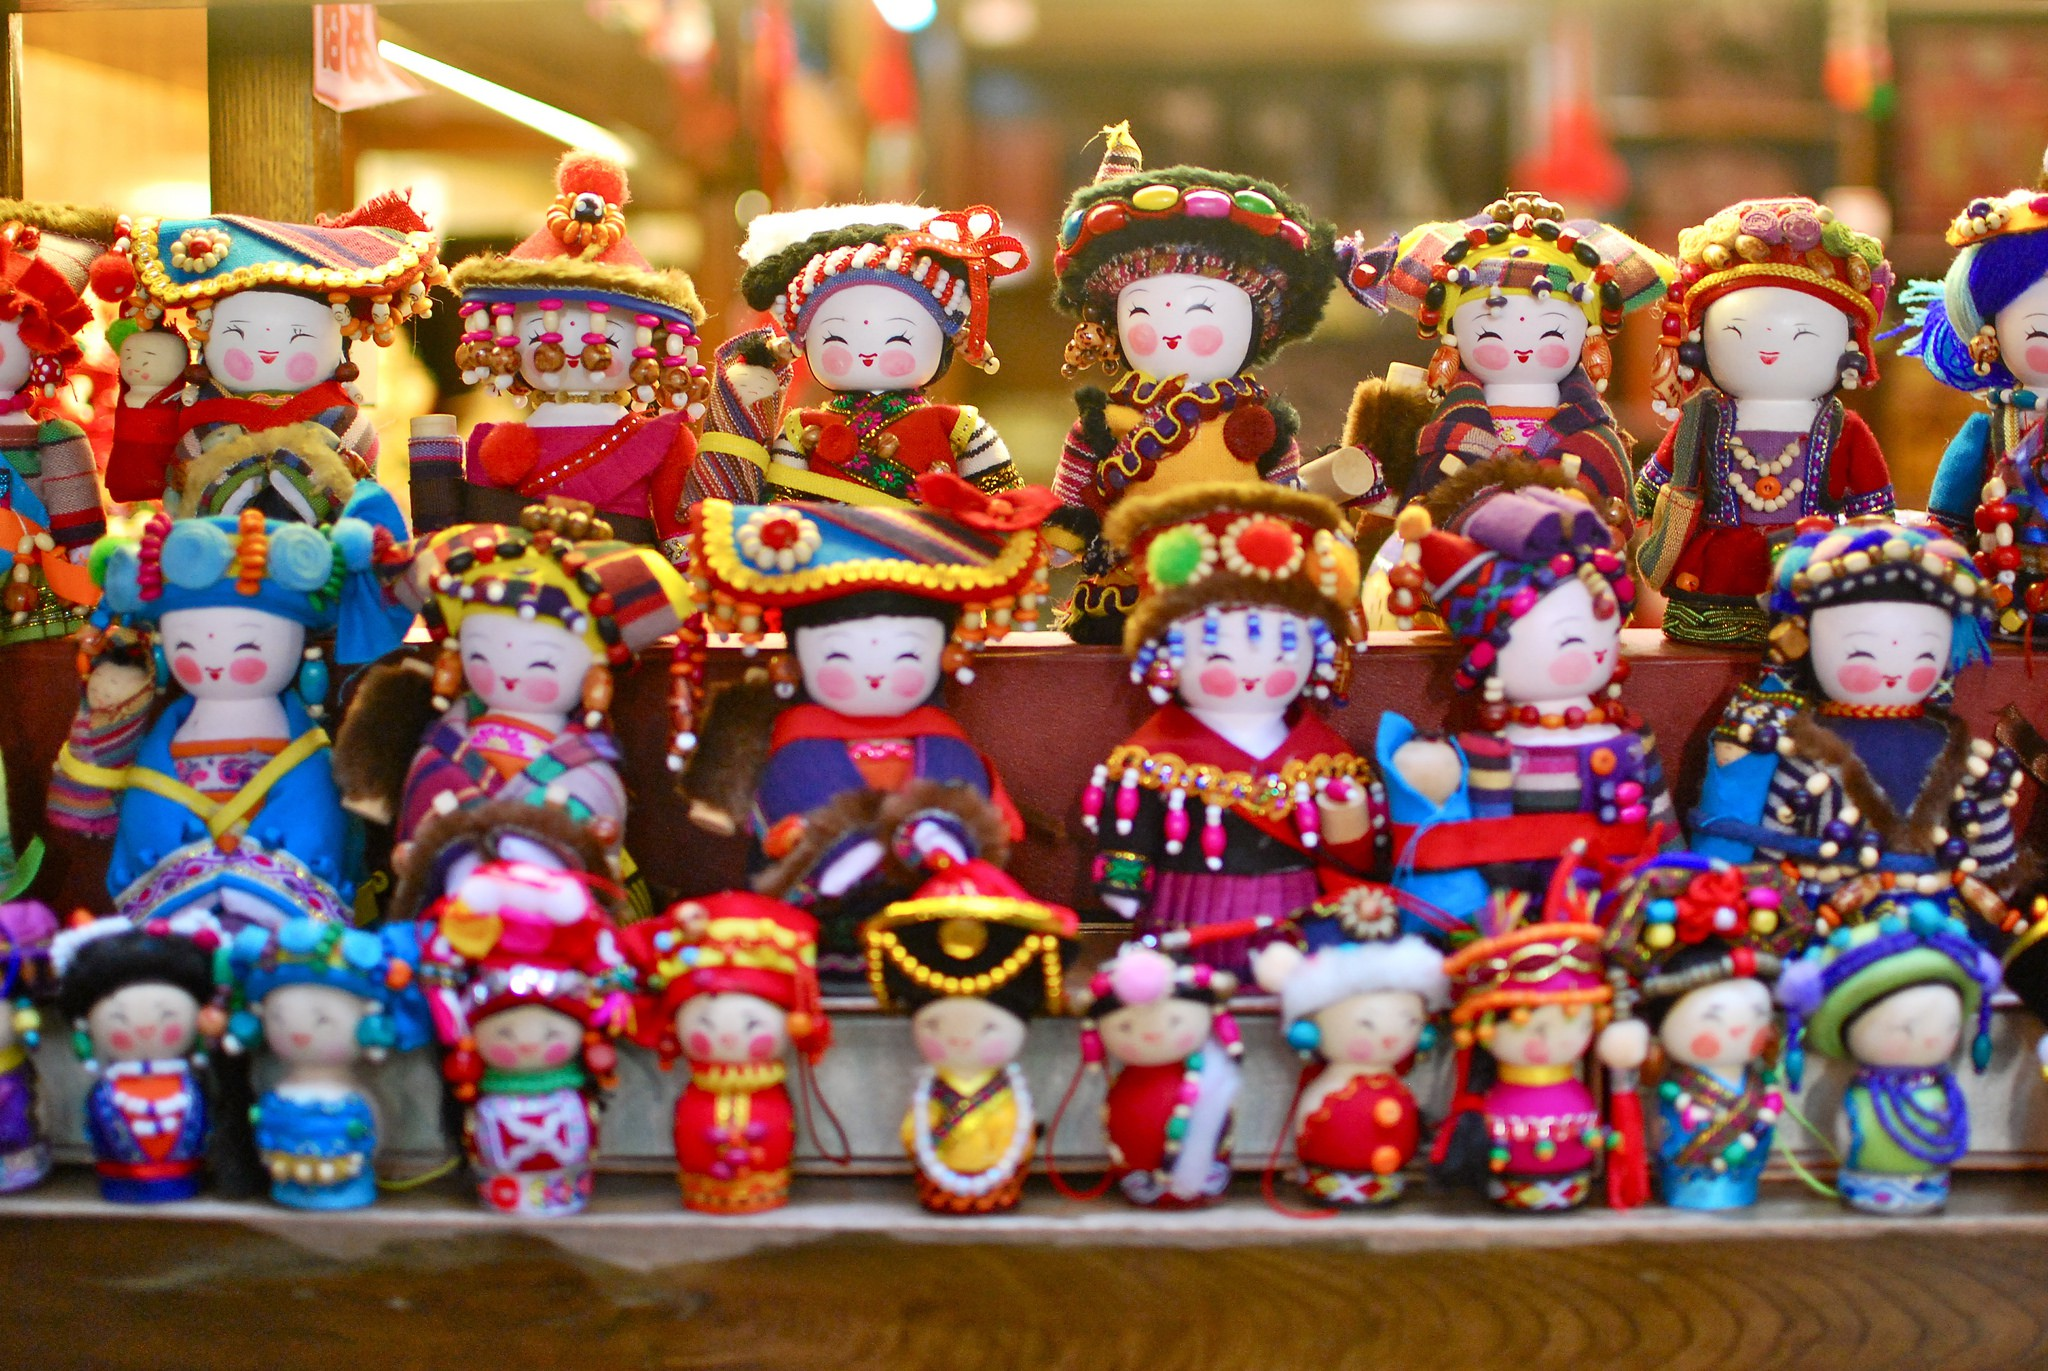 "<a href=""https://www.flickr.com/photos/kittykaht/6916833622"">Souvenir dolls I © Kitty Khat/Flickr</a>"